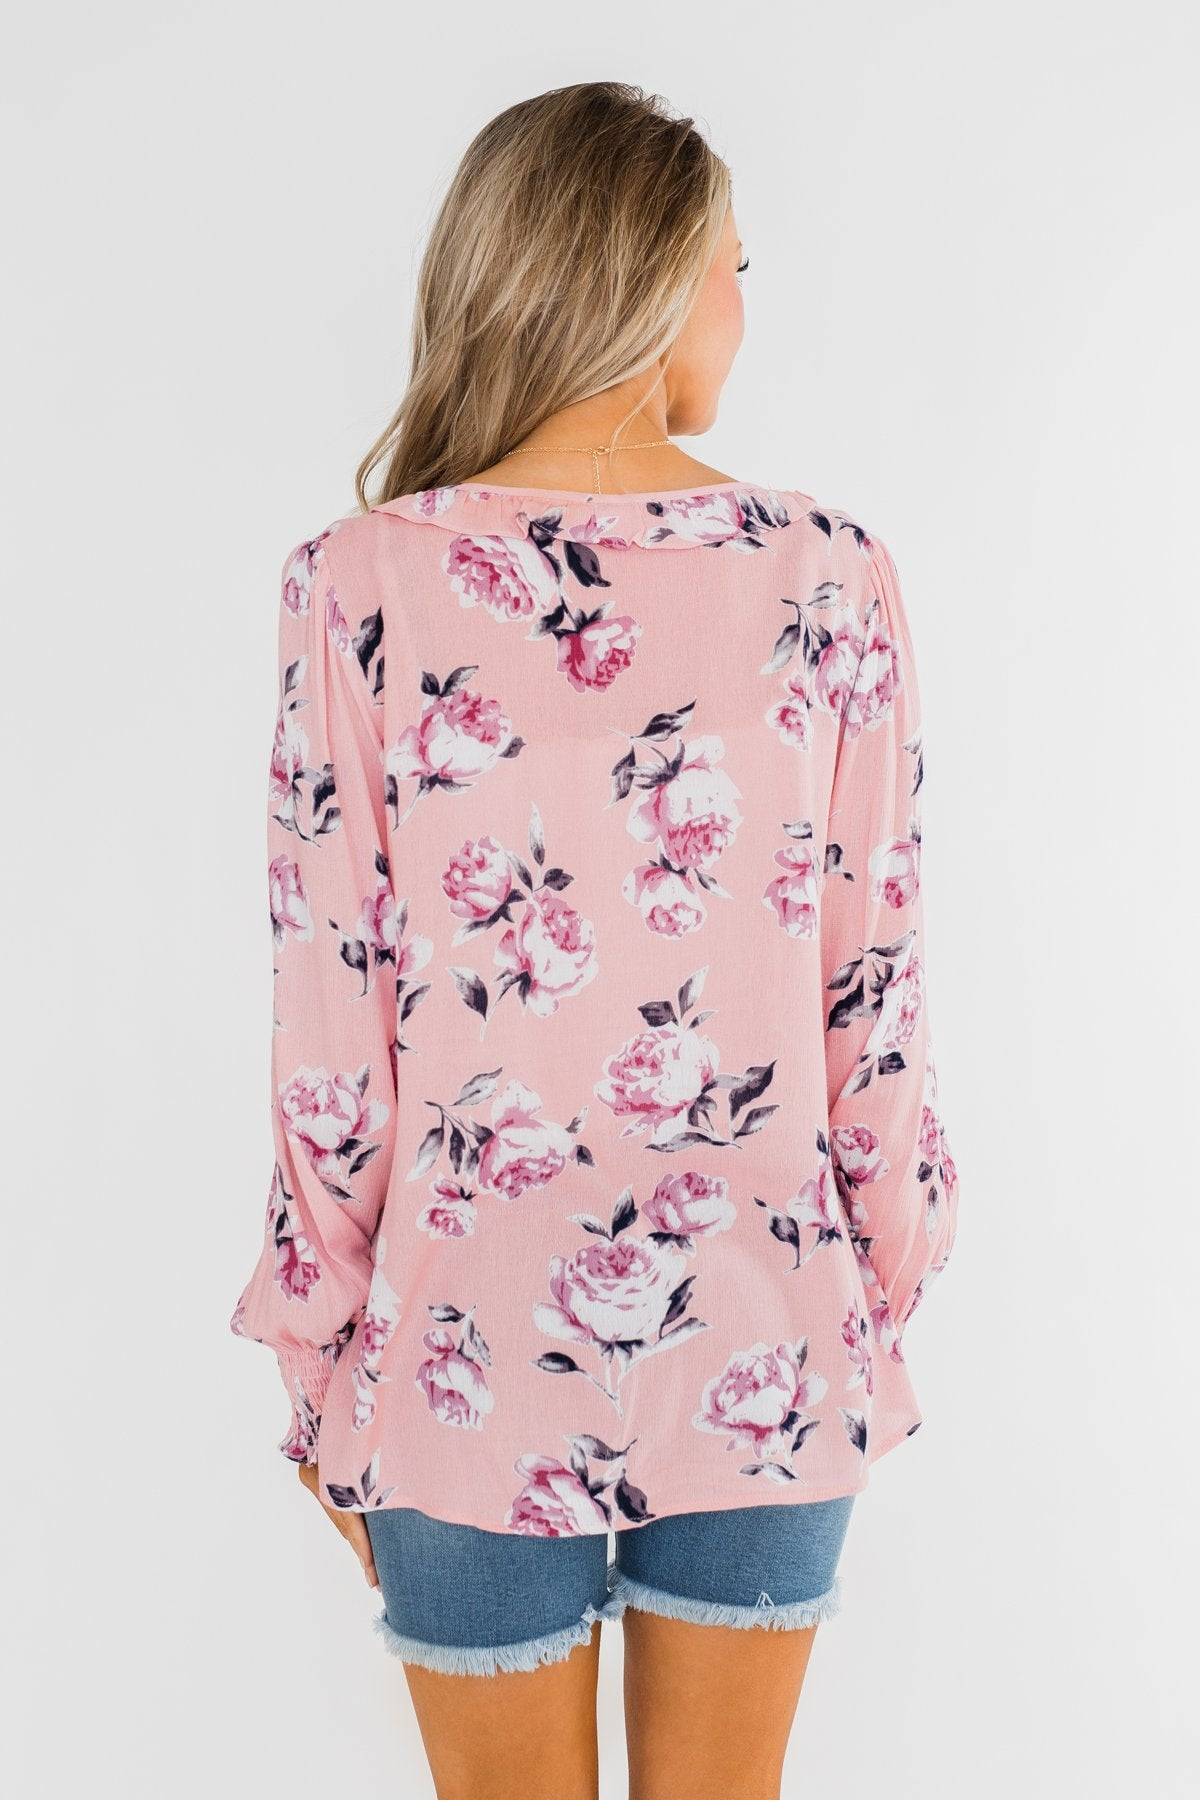 Count Your Blessings Floral Blouse- Blush